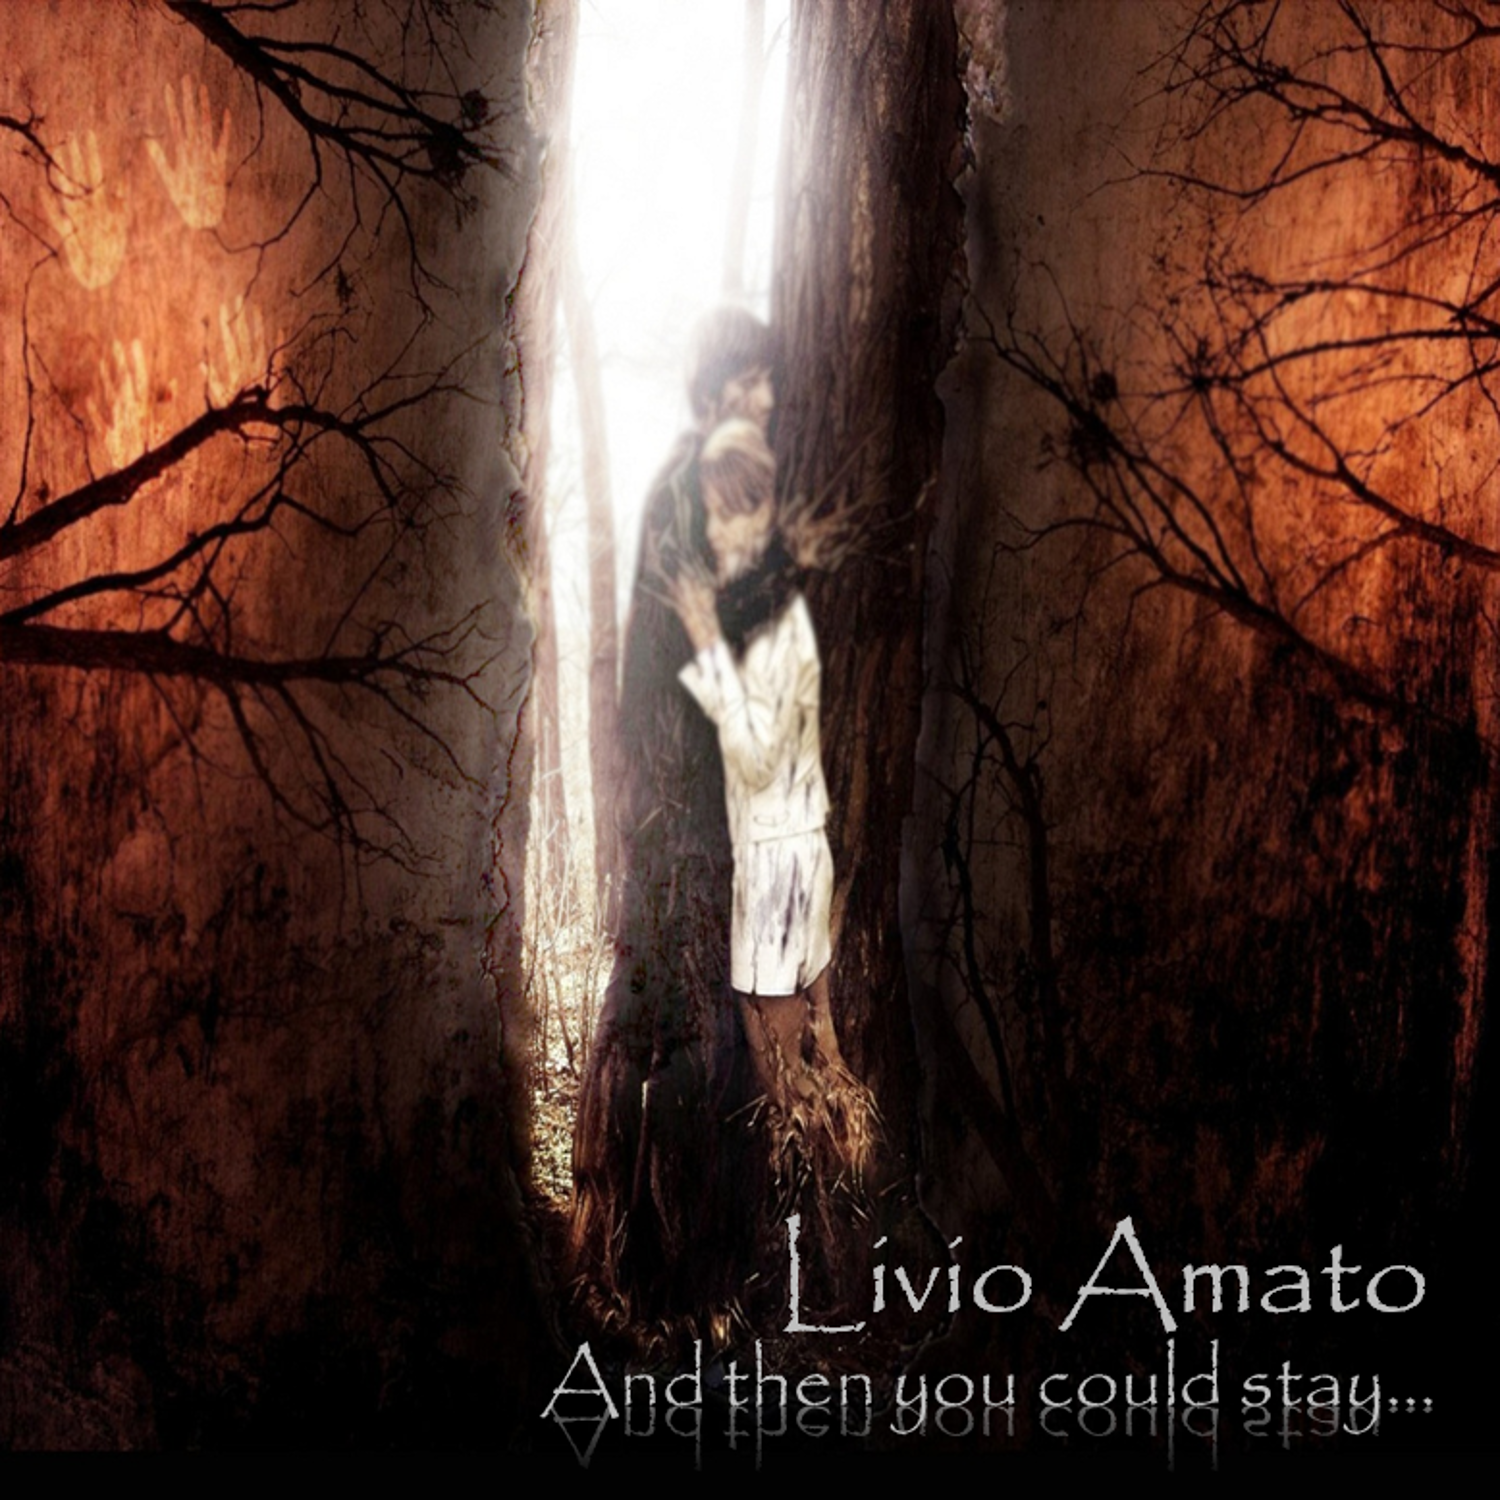 Livio Amato And the you could stay...